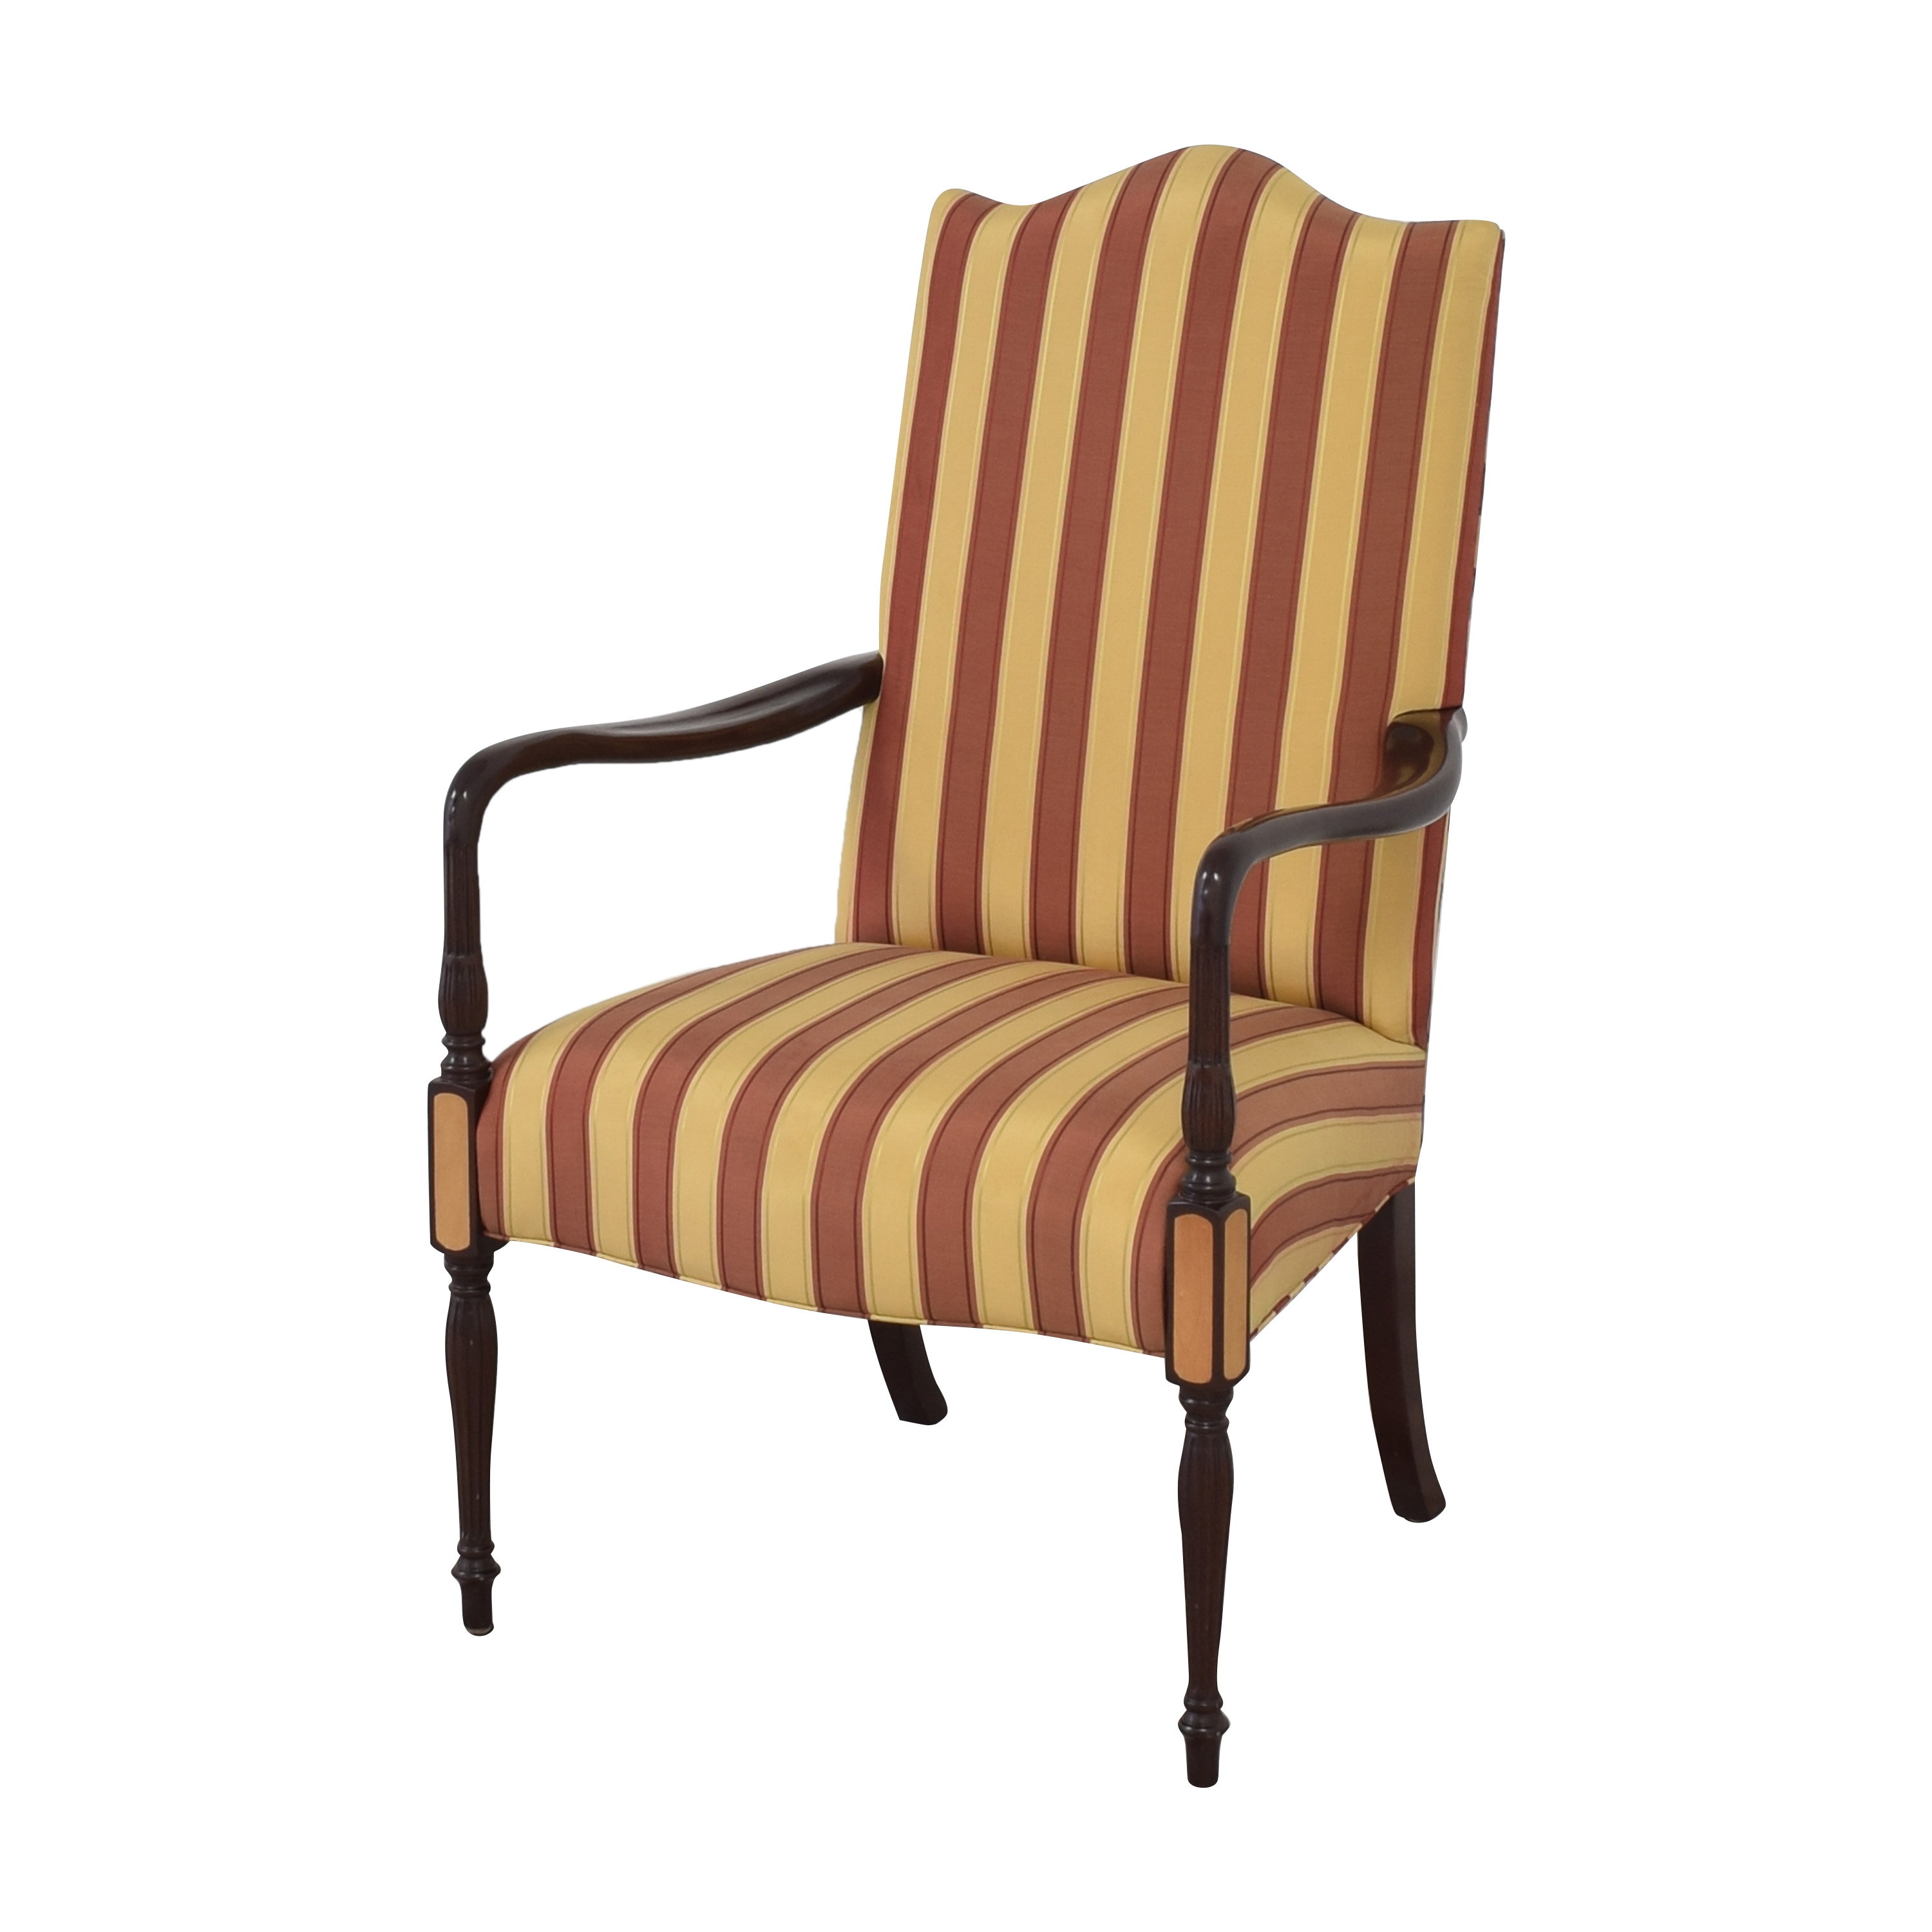 Hancock and Moore Hancock & Moore Striped Accent Chair used